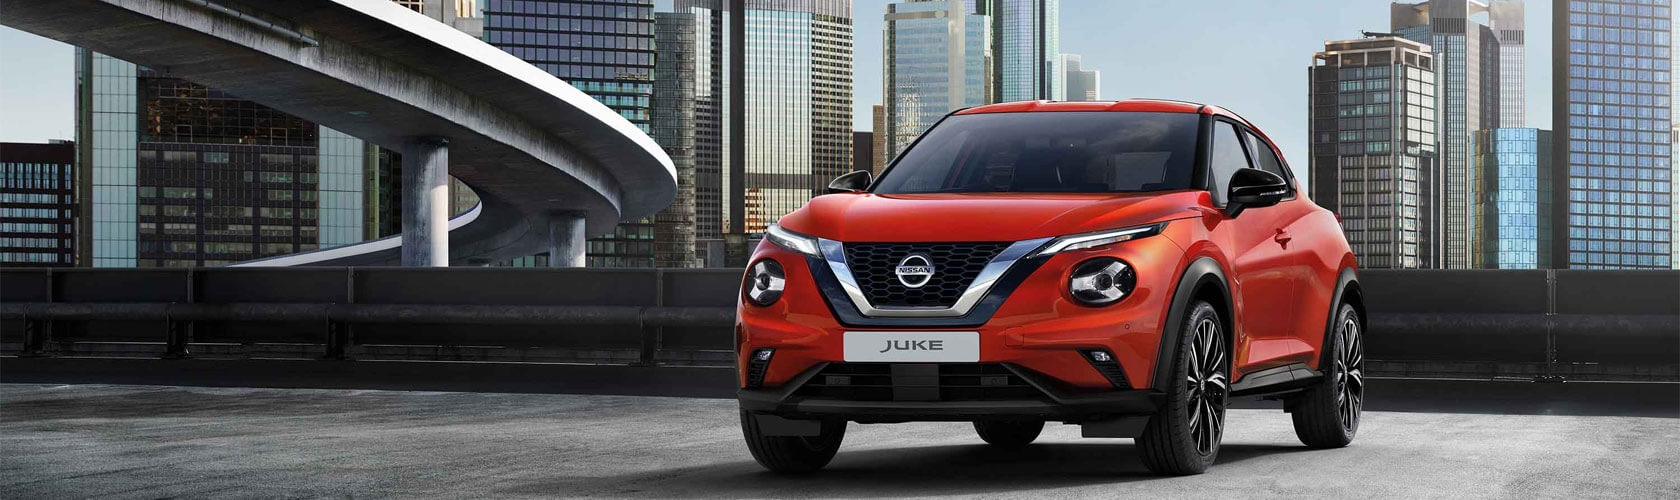 The All New Nissan Juke - Coming Soon